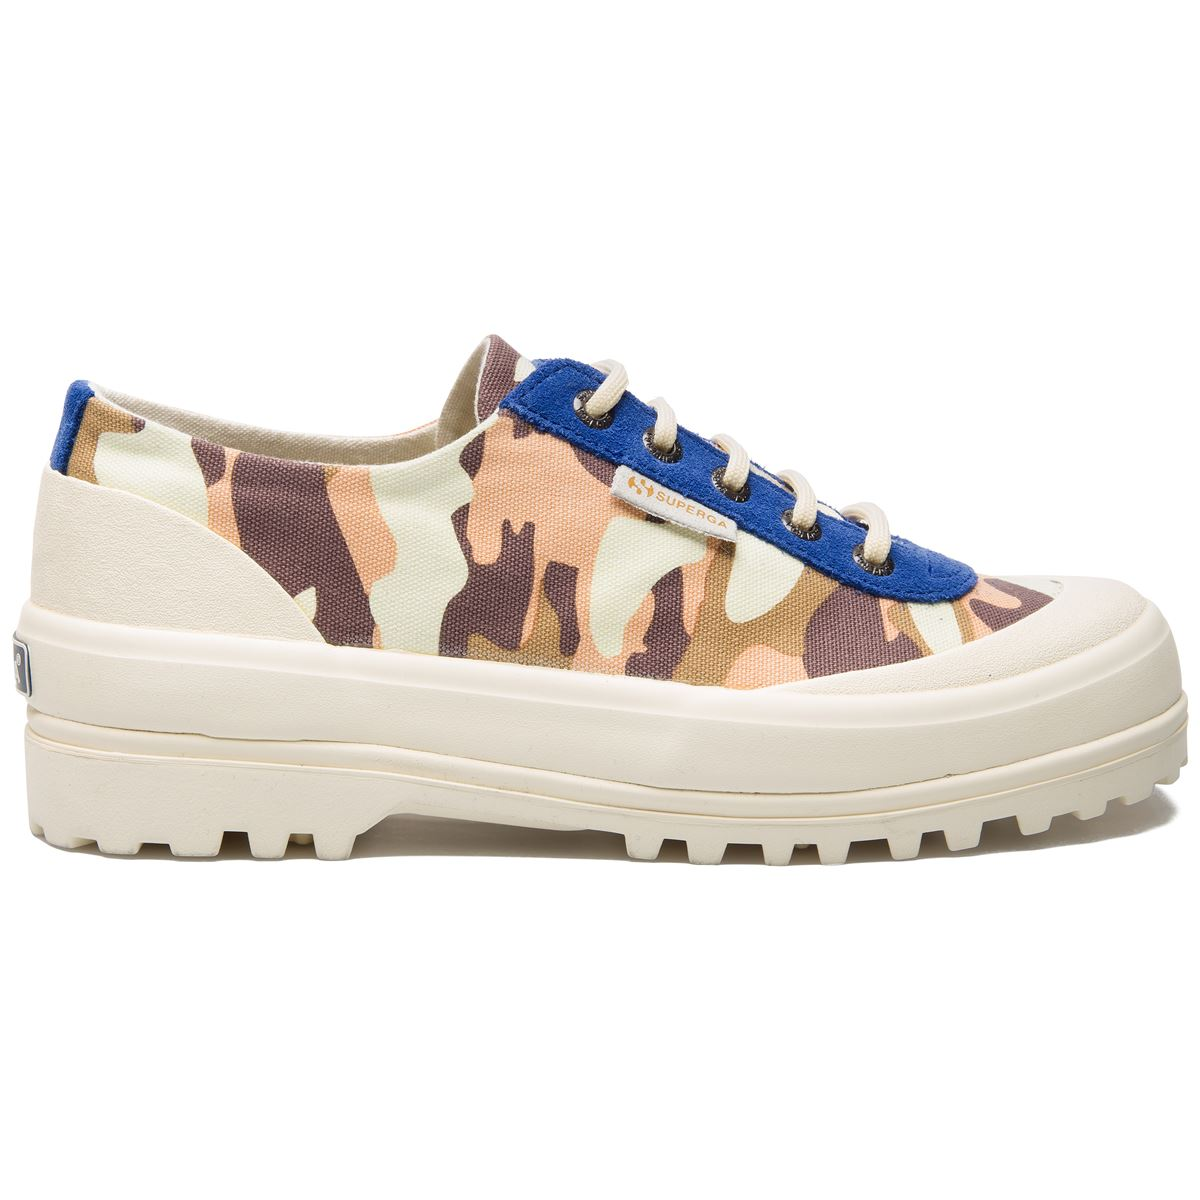 Italian Ankle Boots Superga for men and women-S61118WPUR